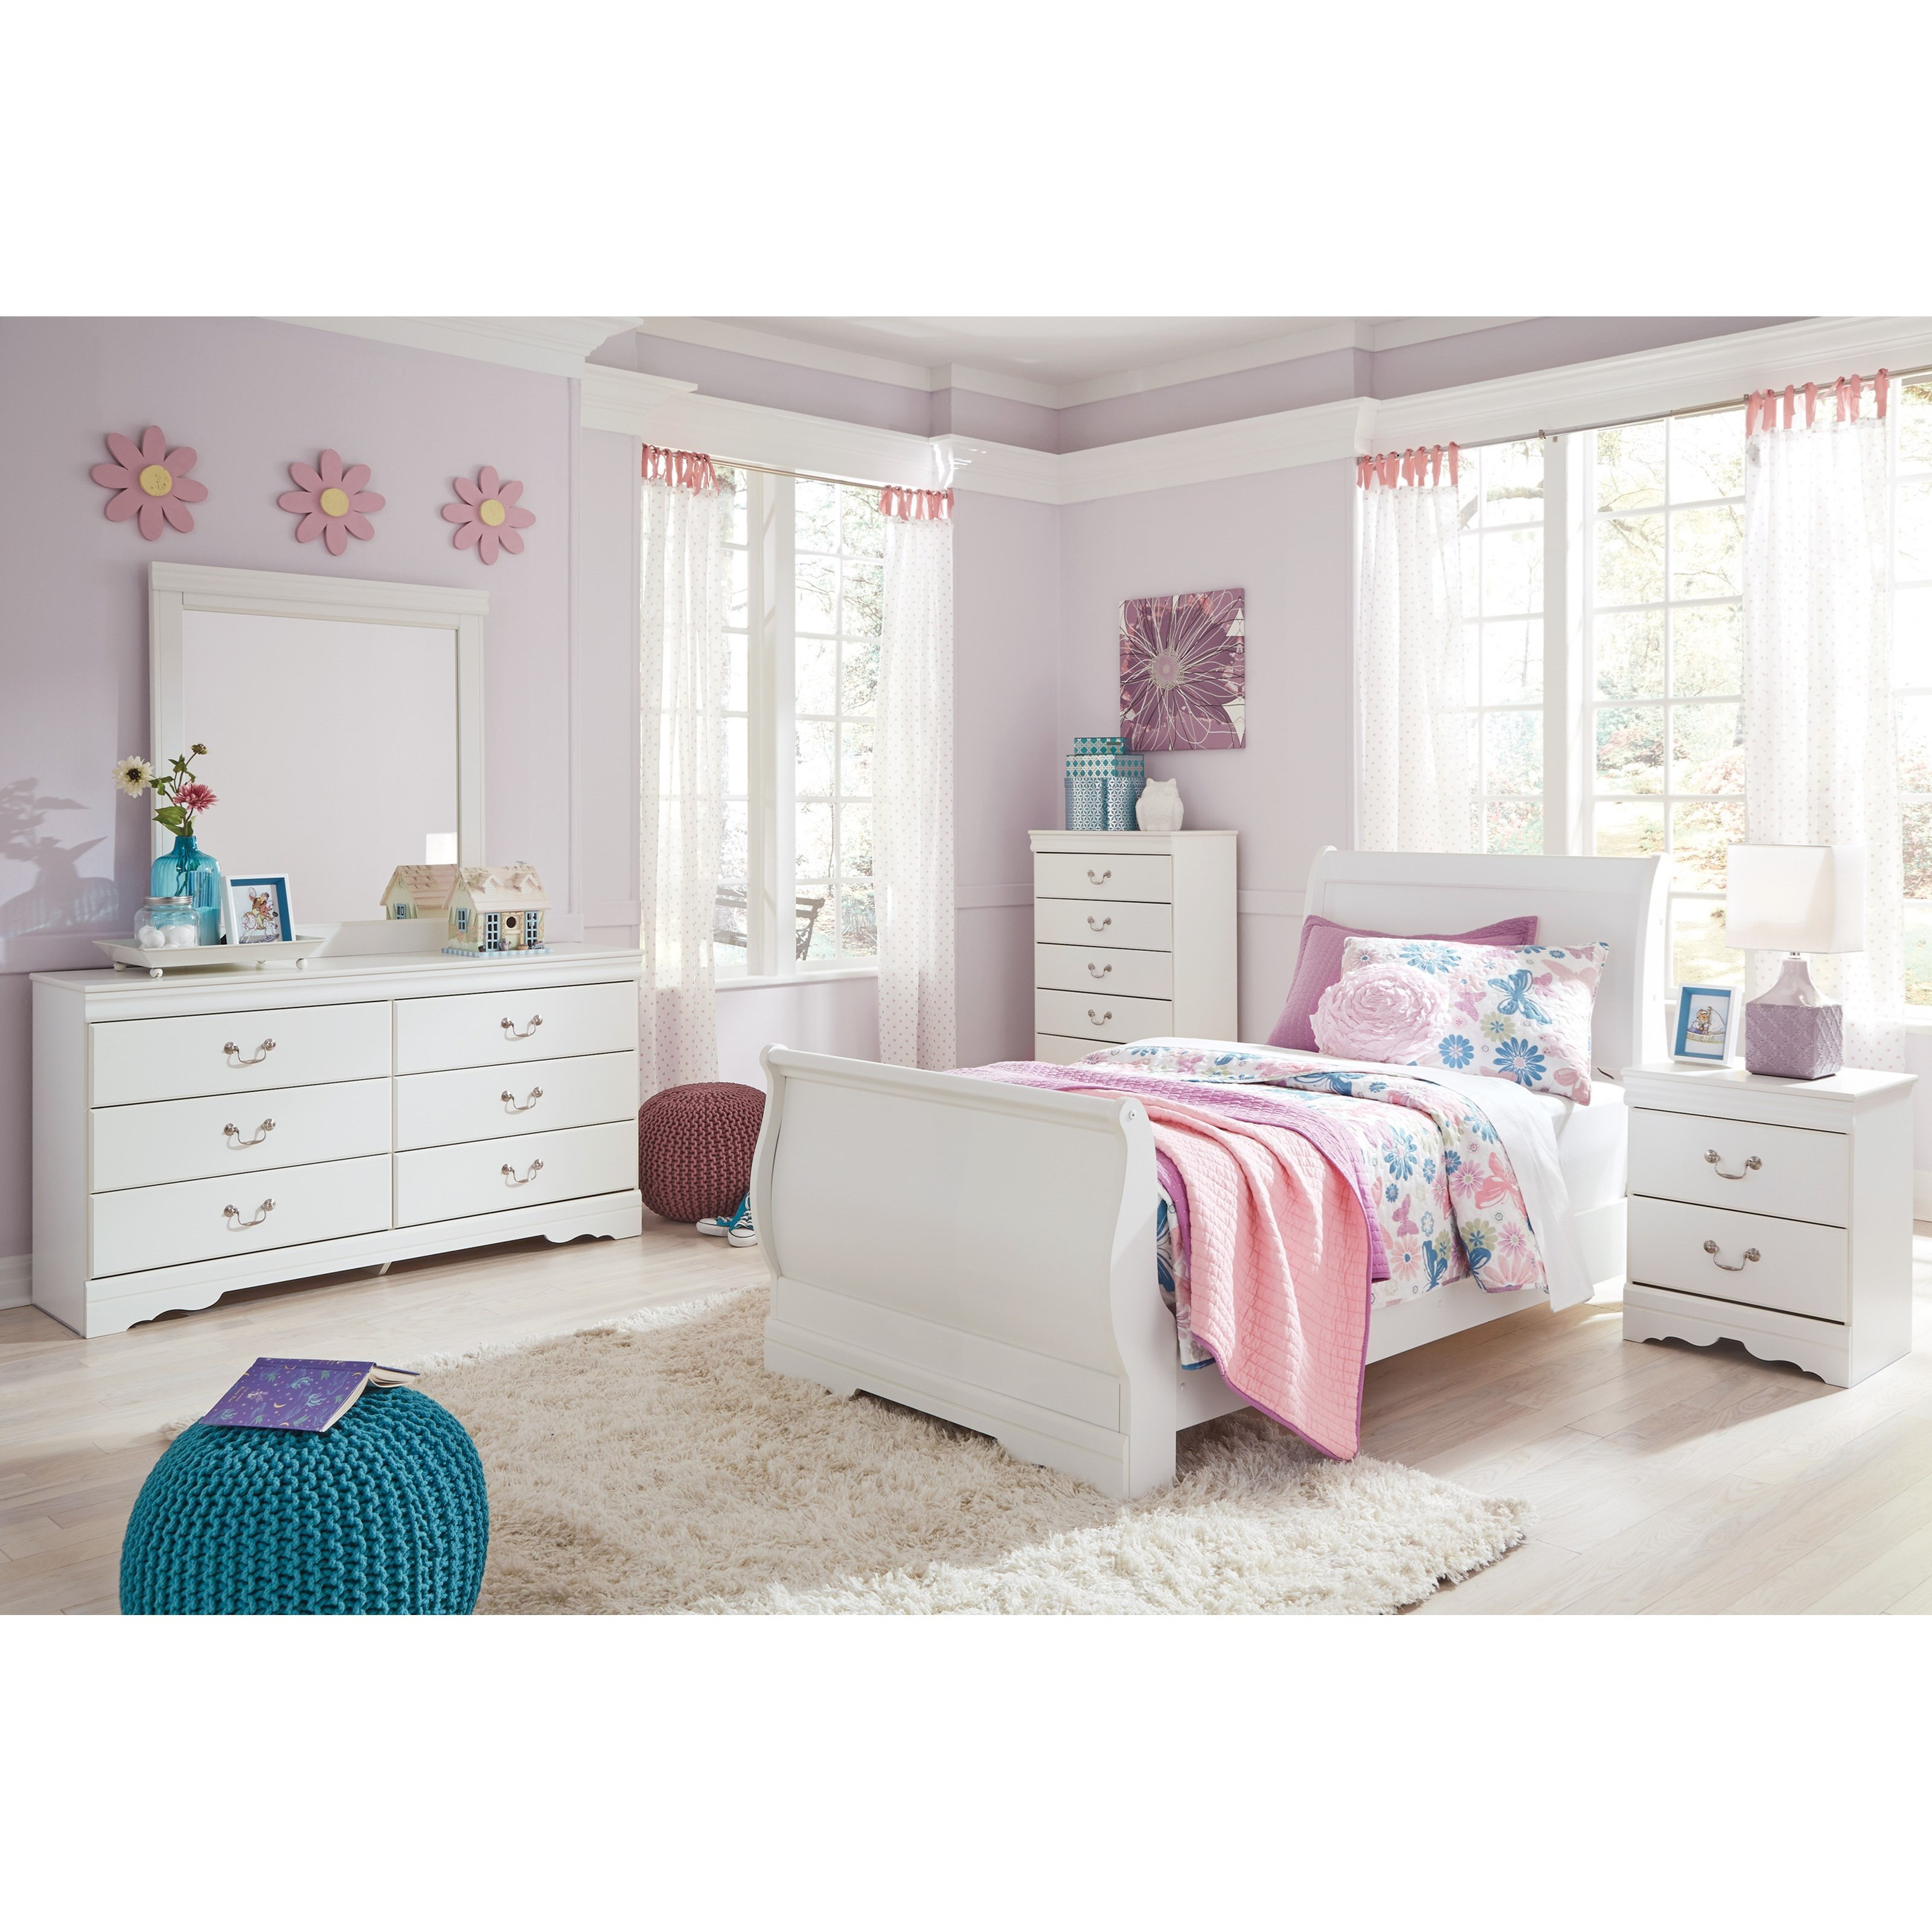 group royal height item threshold trim products ashley bed derekson width benchcraft twin by bedroom furniture